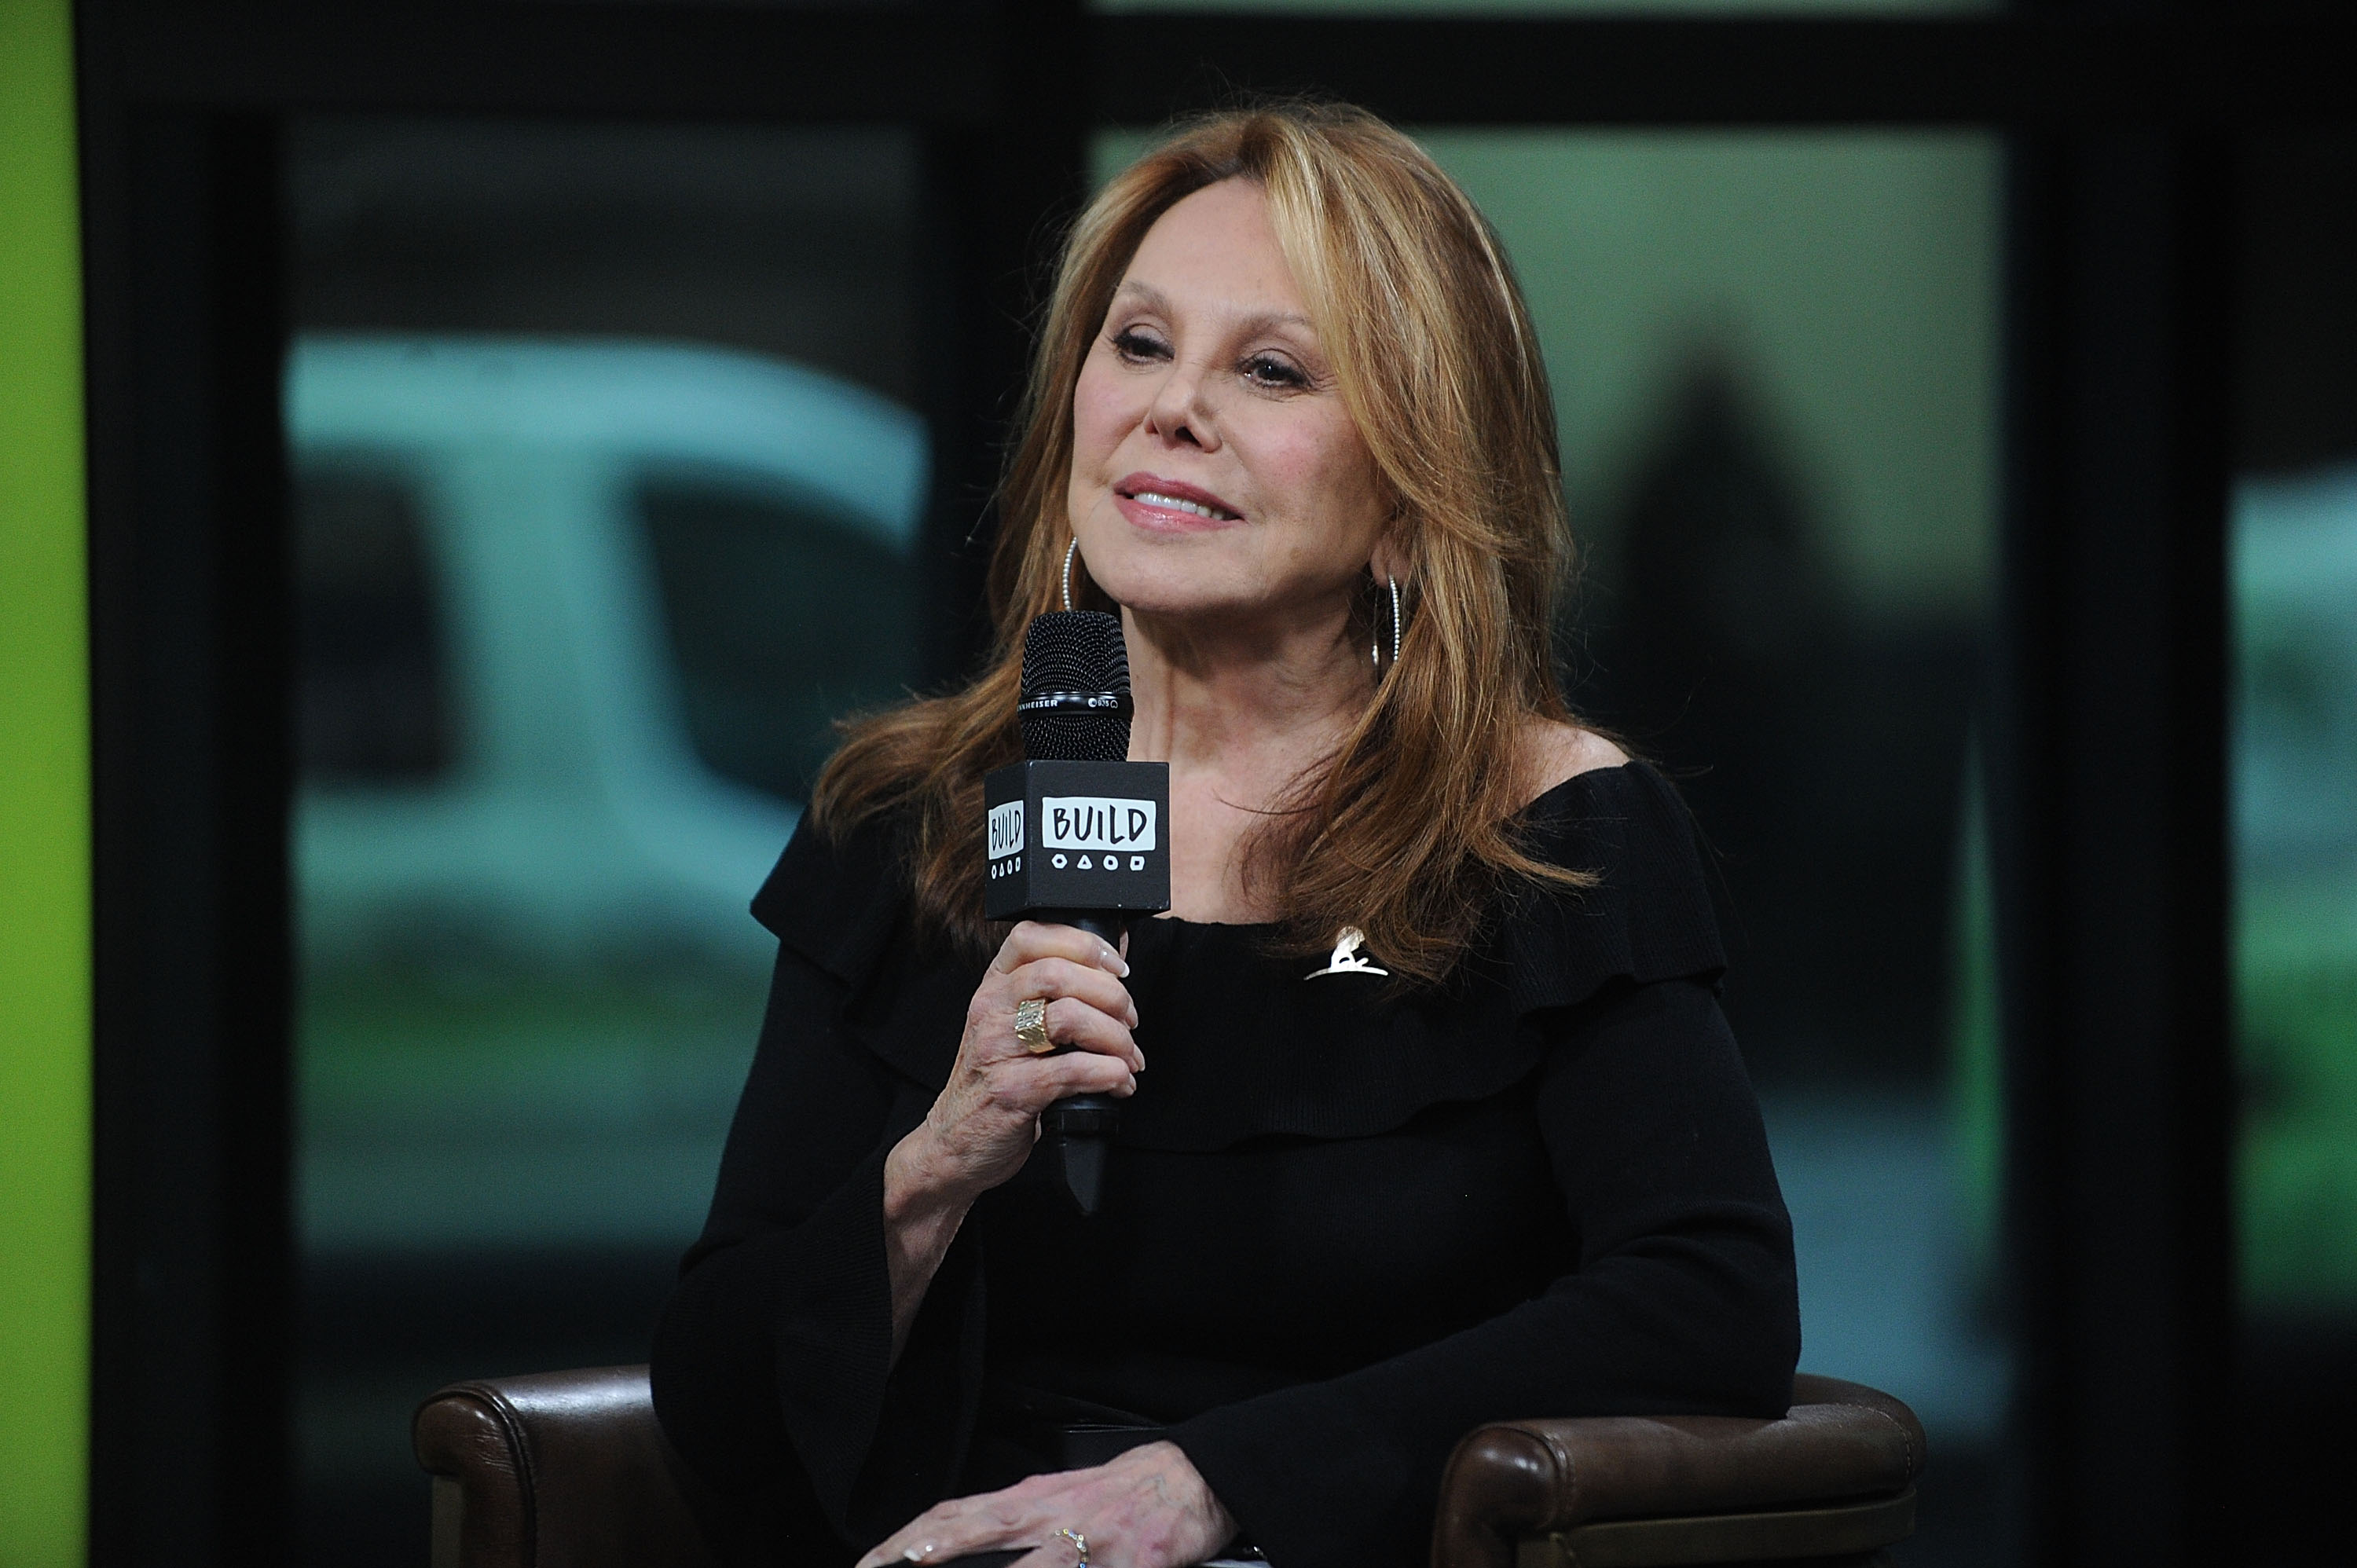 Marlo Thomas attends Build presents Jeannette Ferran Astorga, Laura Bishop, Alex Bellos and Marlo Thomas Discussing St. Jude at Build Studio on December 12, 2017 in New York City | Photo:GettyImages